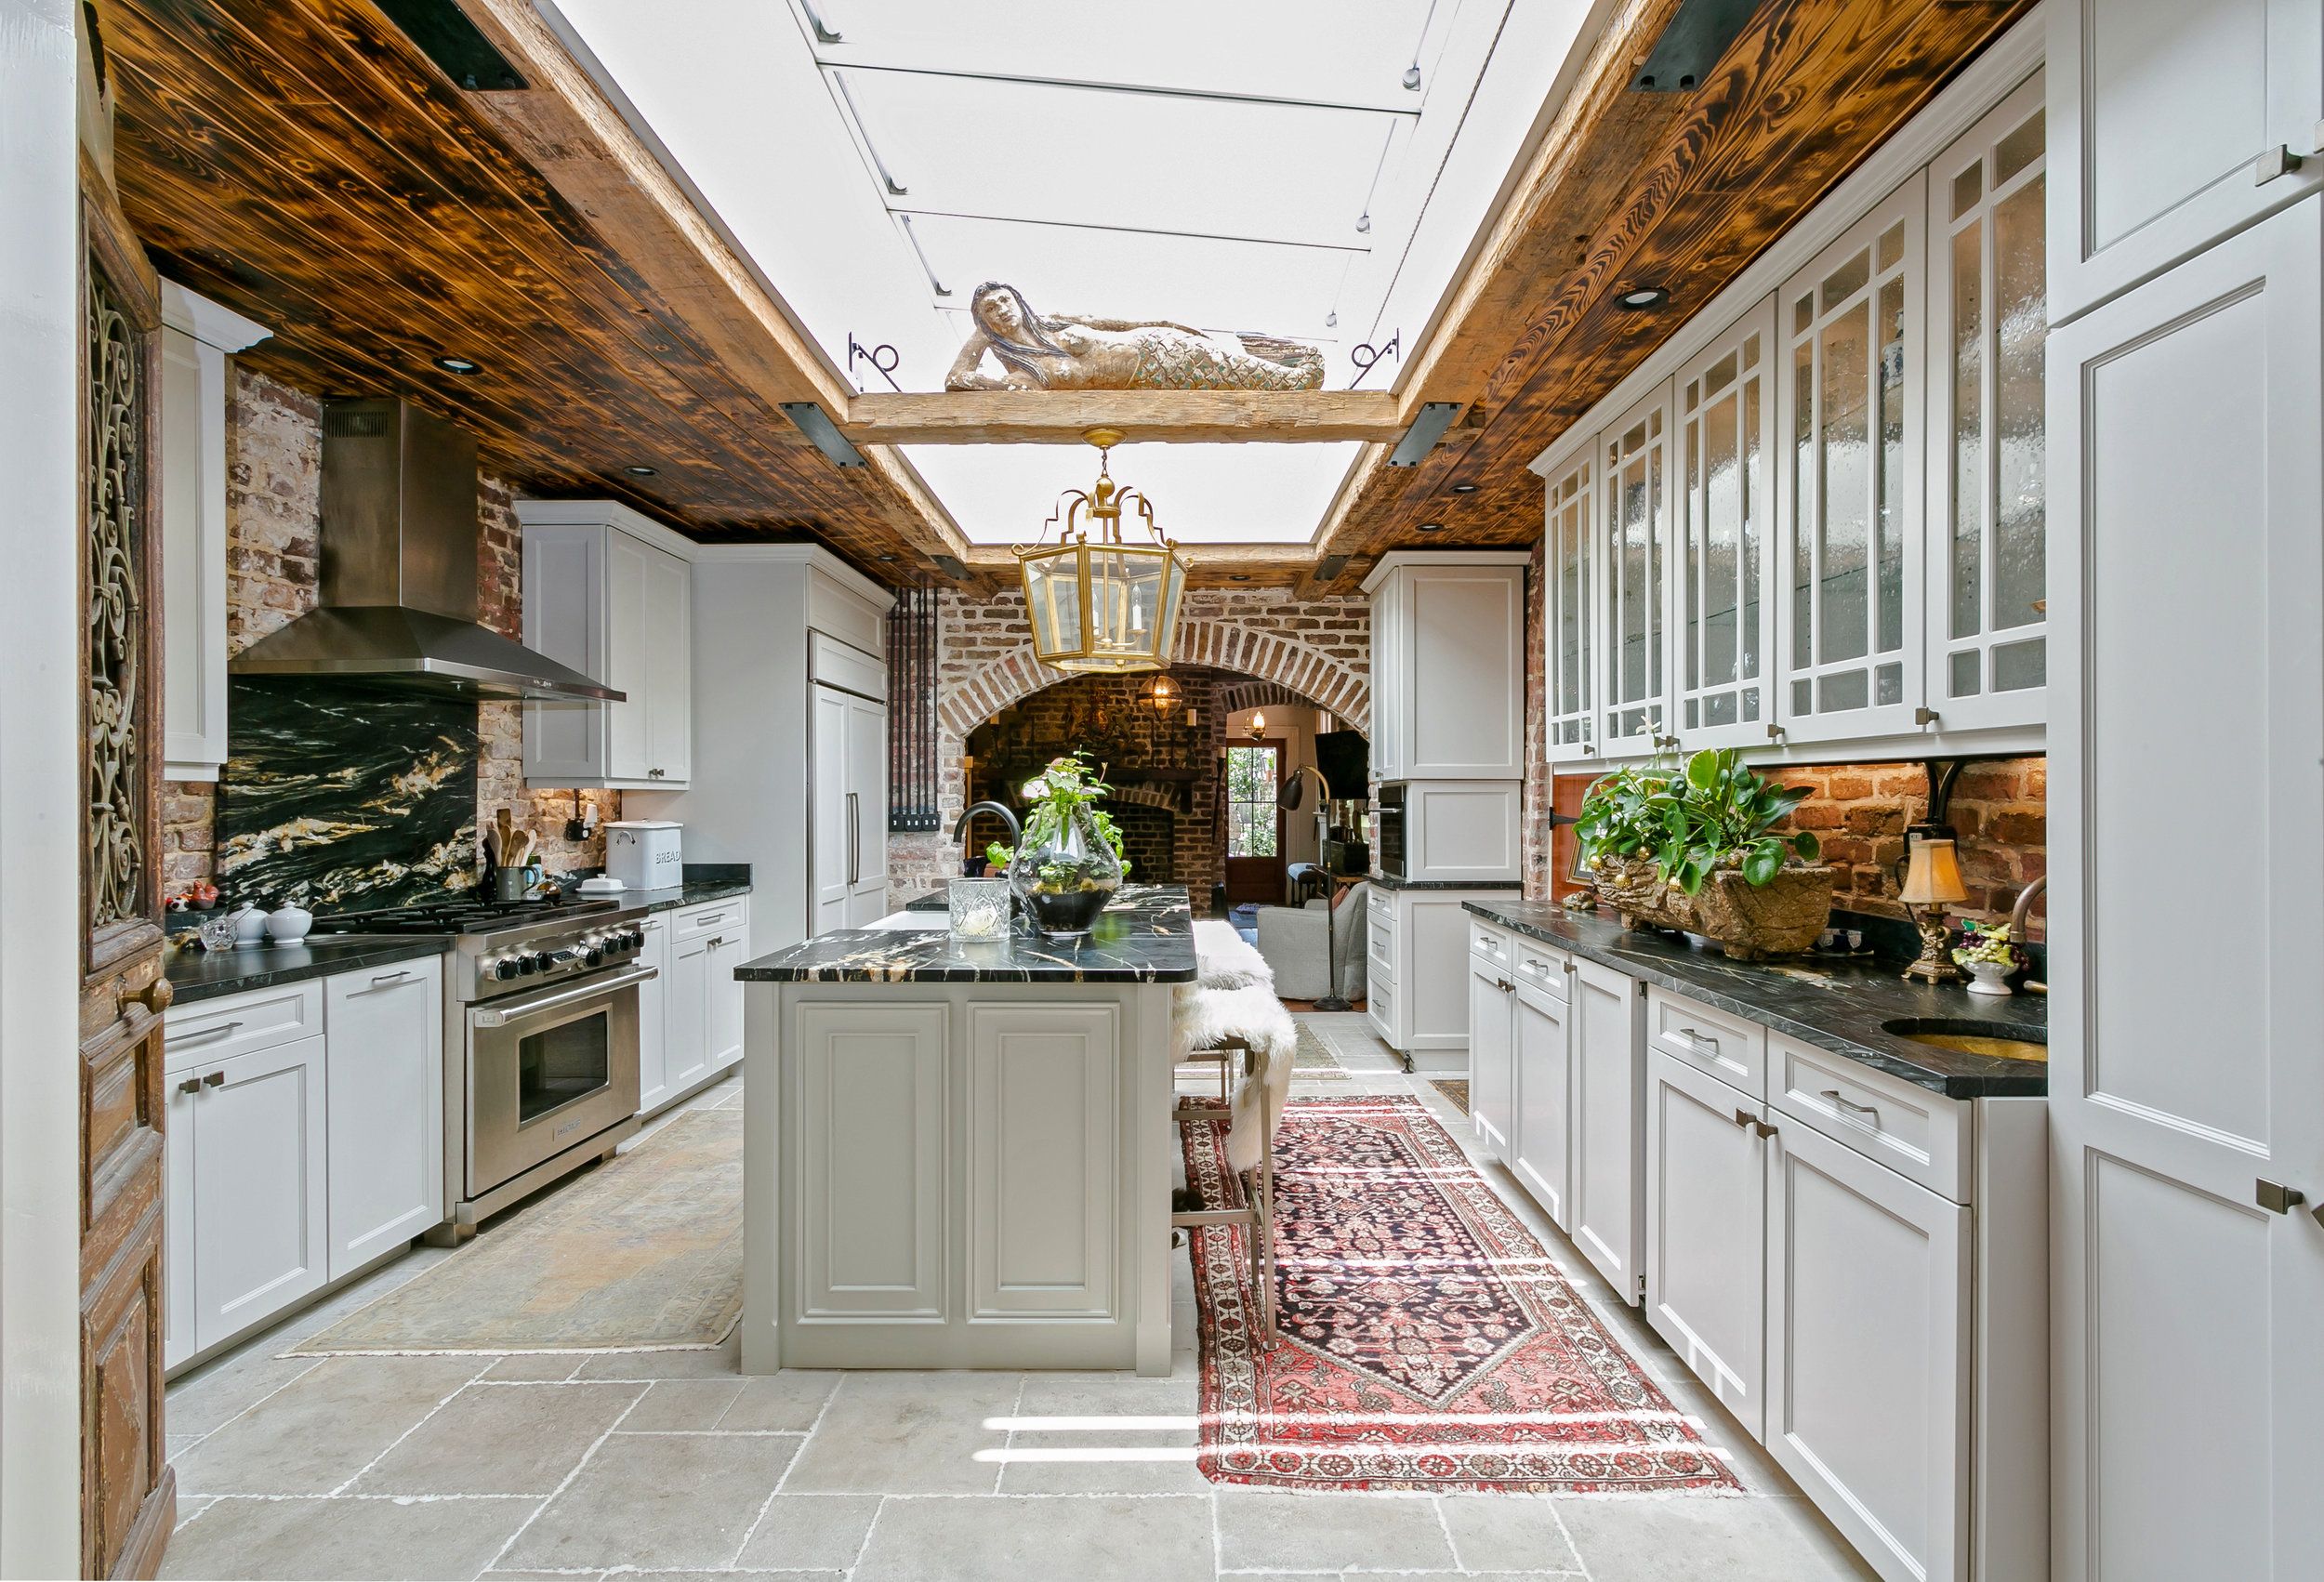 [Photography: Callie Cranford, Charleston Home + Design magazine]